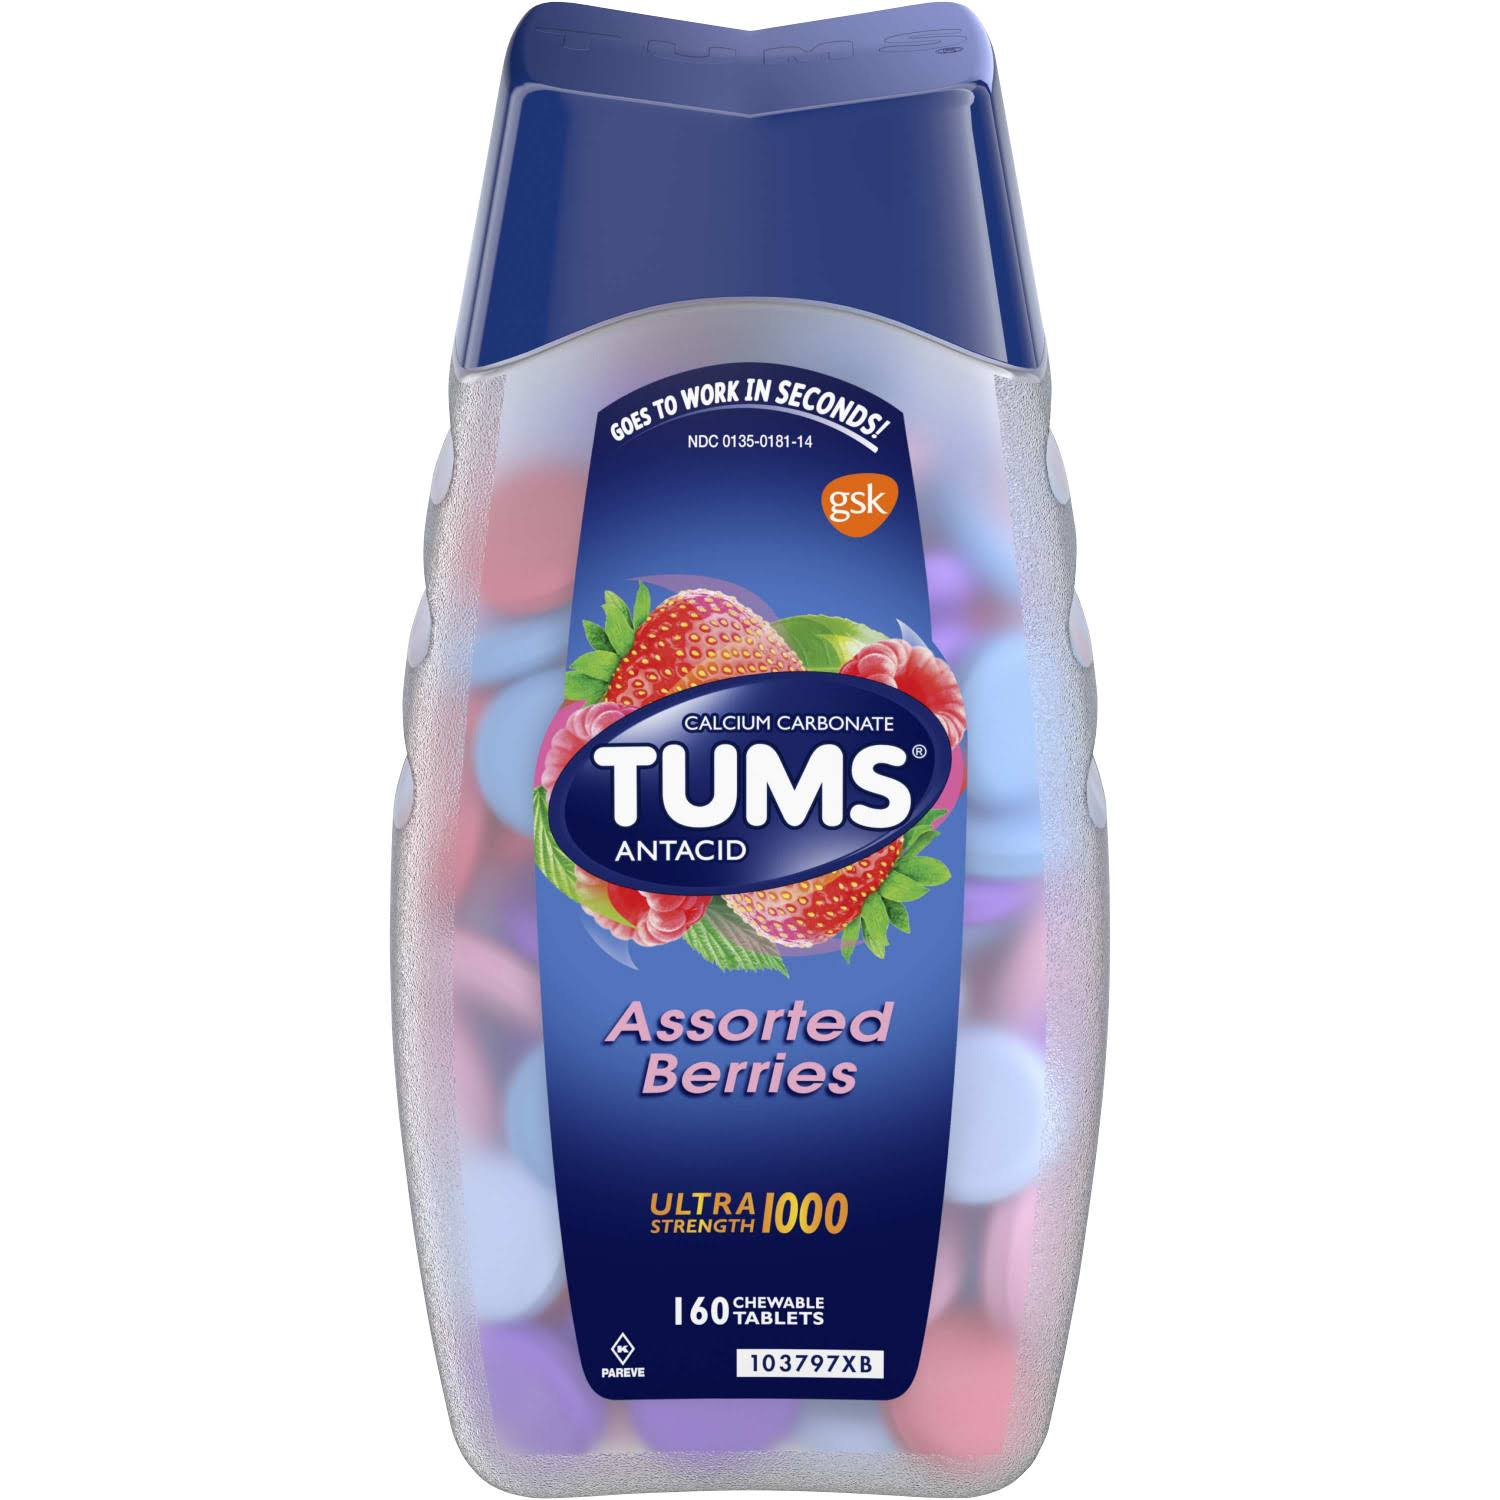 Tums Ultra Maximum Strength Antacid Relief Chewables - Assorted Berries, 160 Count